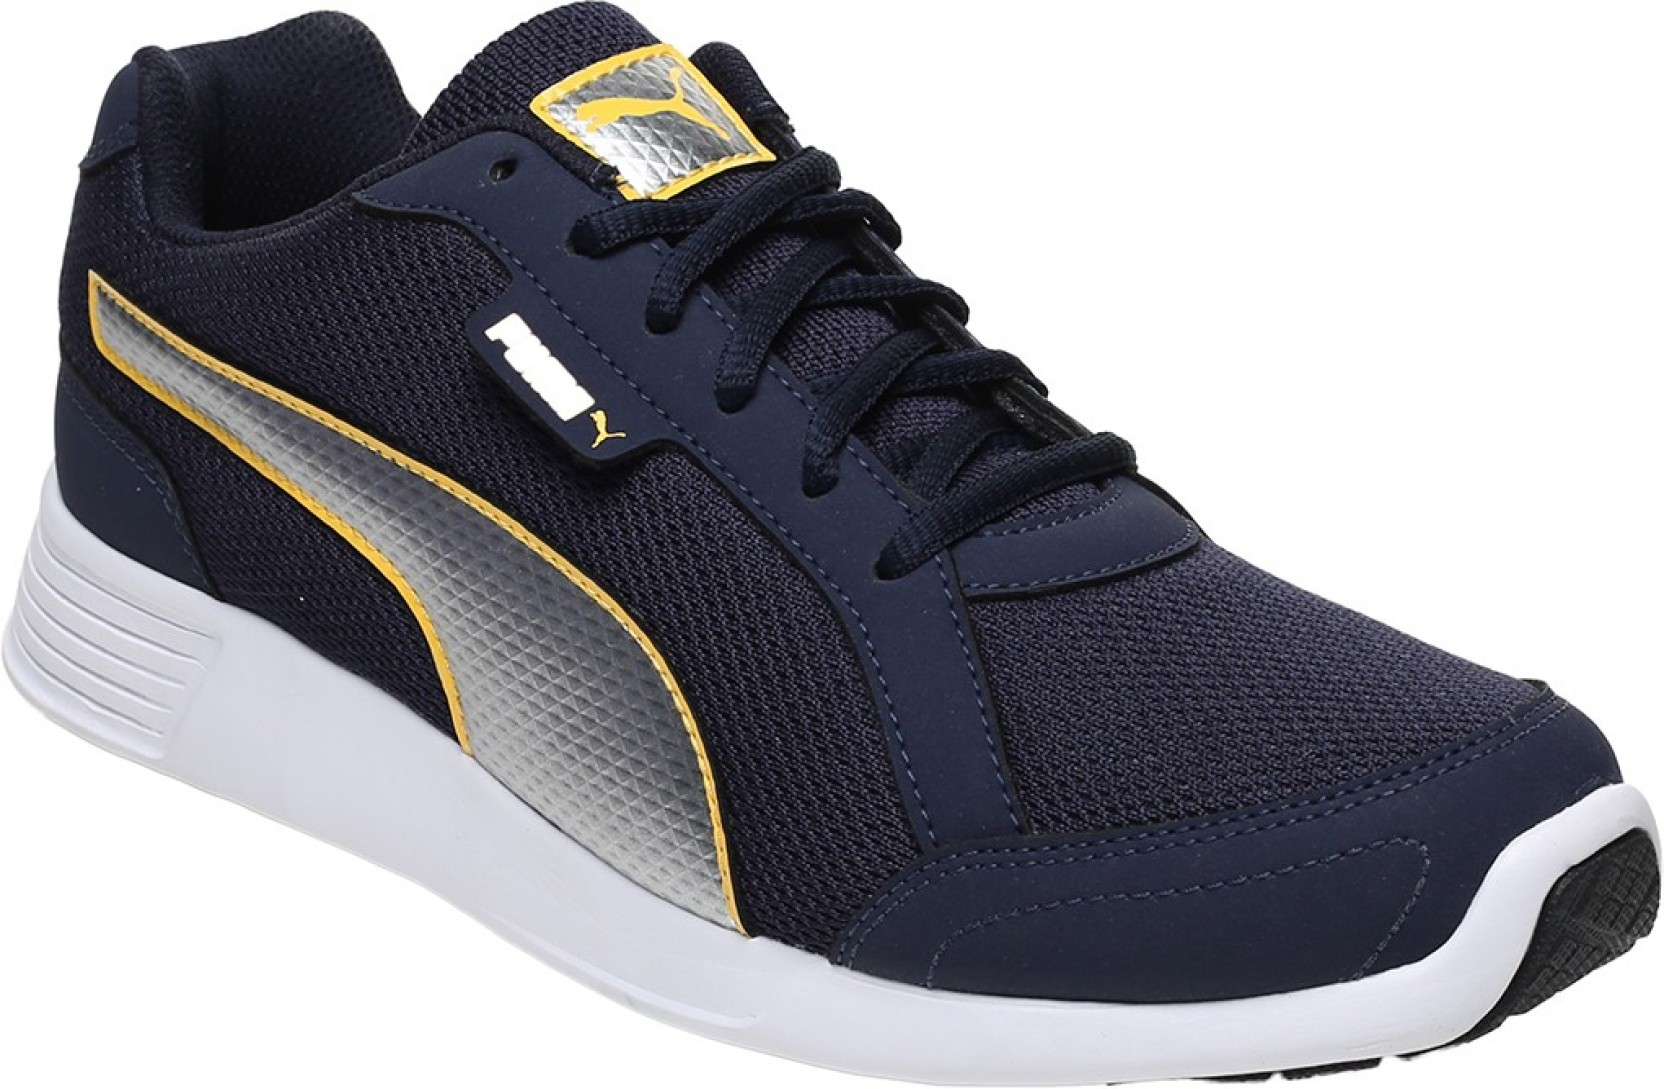 Buy Puma Running Shoes Online India